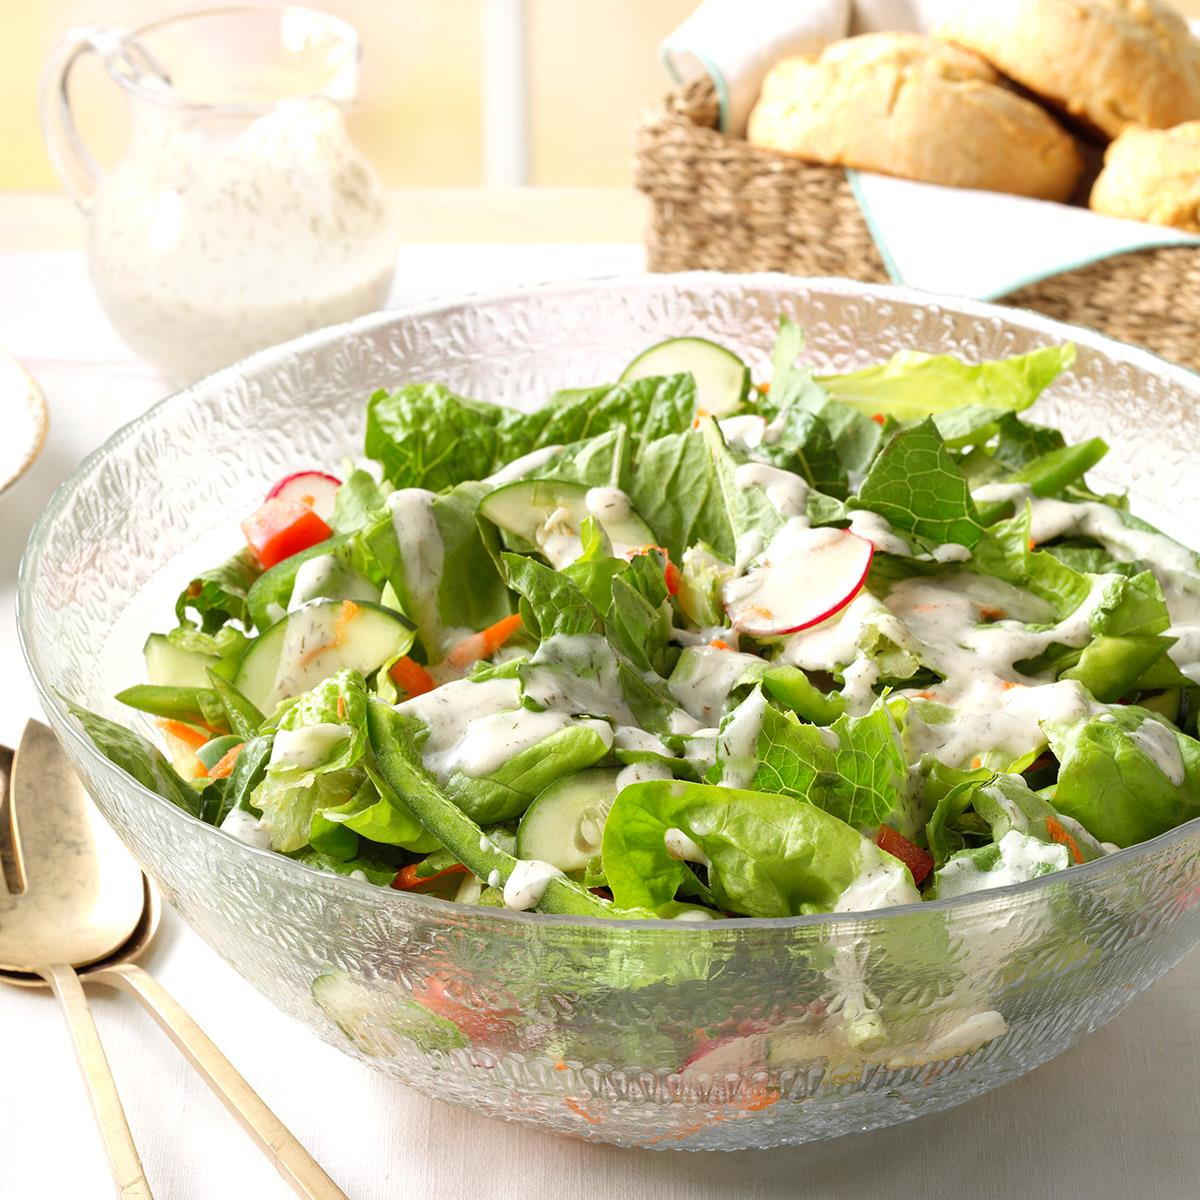 Green Salad with Dill Dressing image